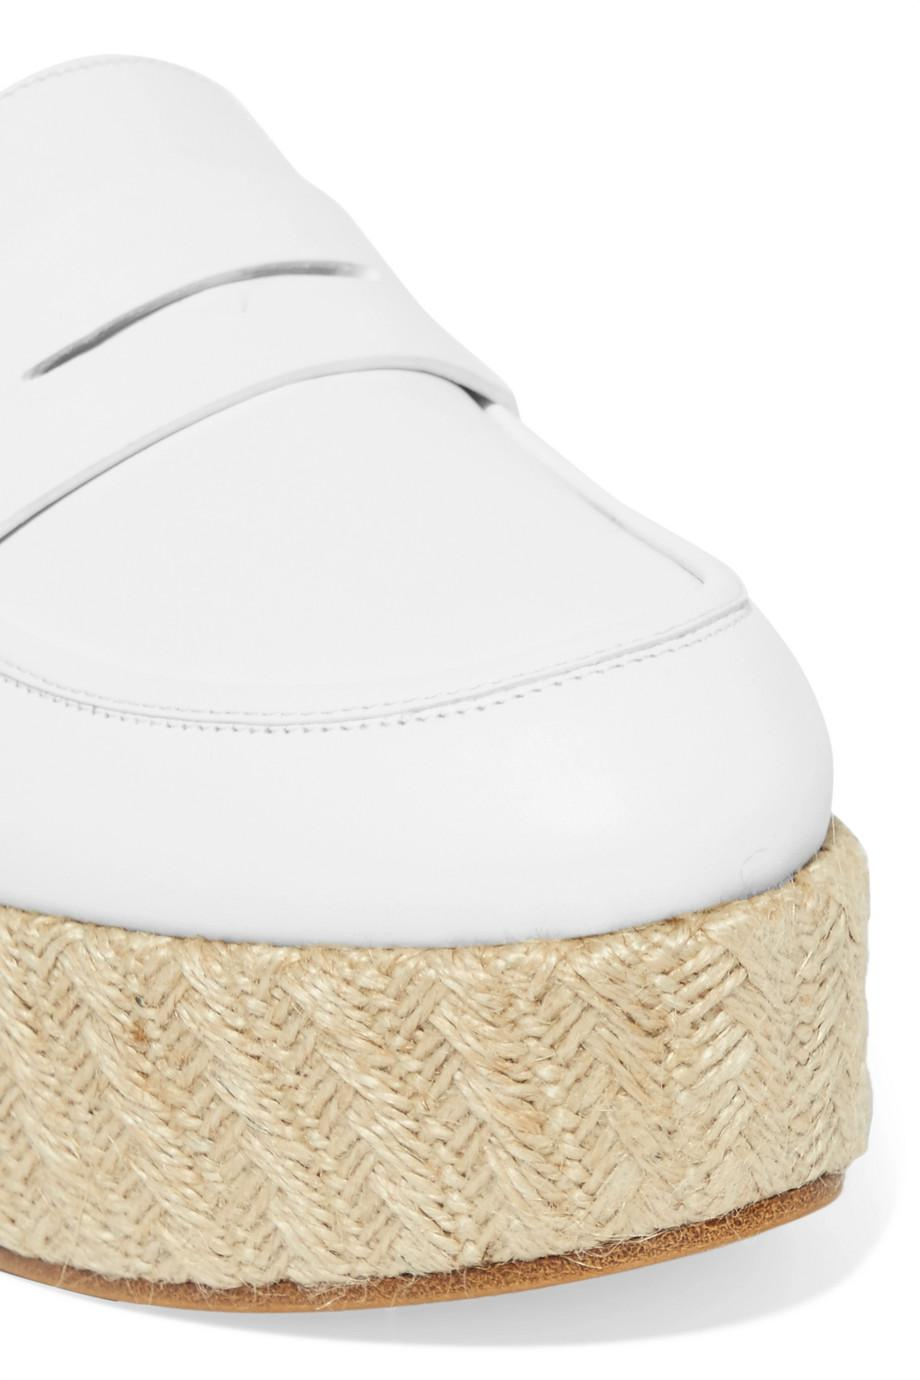 Brucco Leather And Jute Platform Loafers - Ivory Gabriela Hearst tBVqGlv